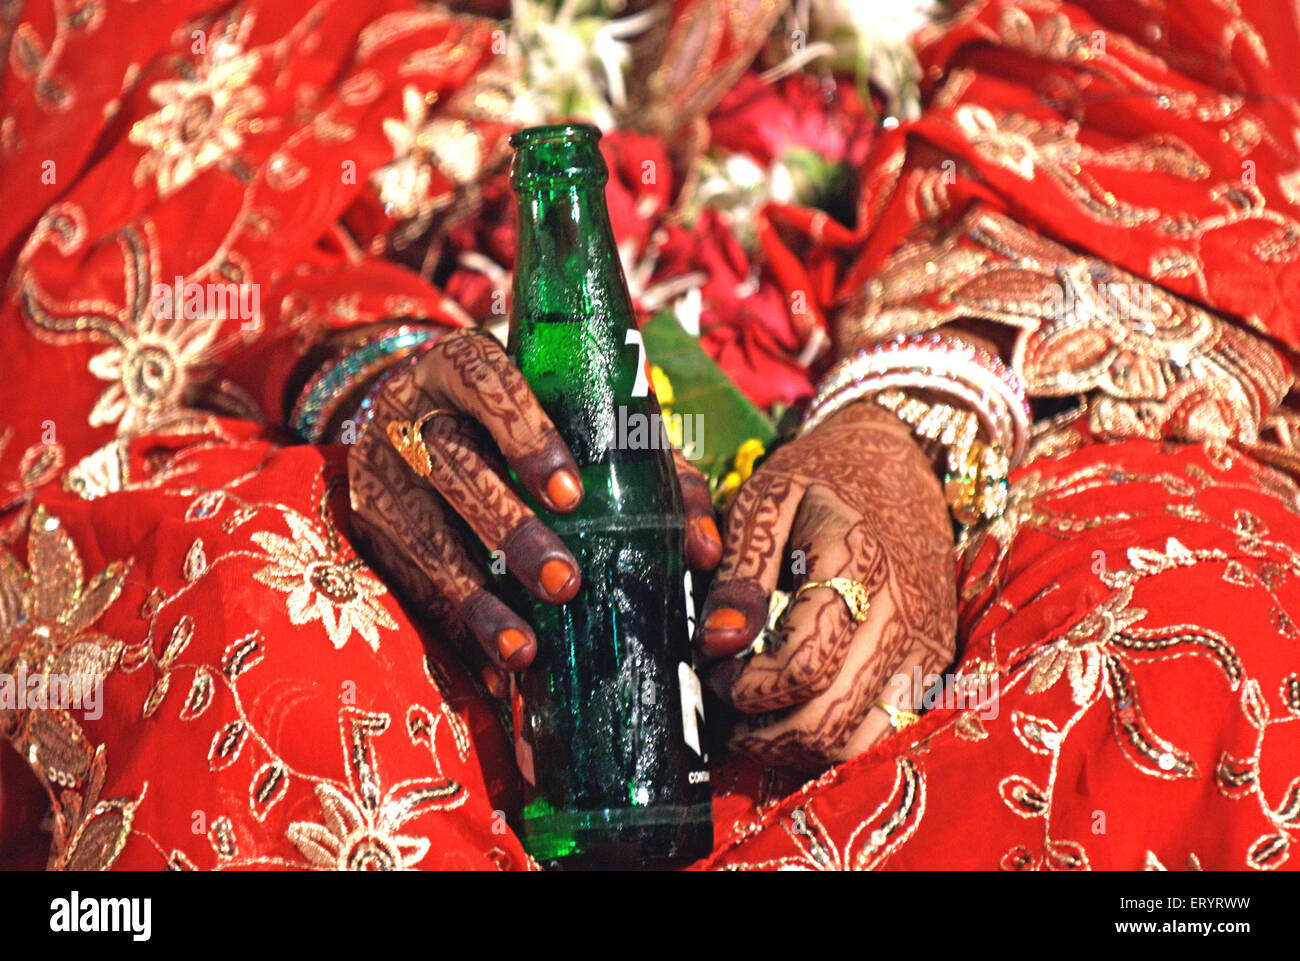 Muslim bride holding soft drink bottle in marriage ceremony 15 June 2009 - Stock Image